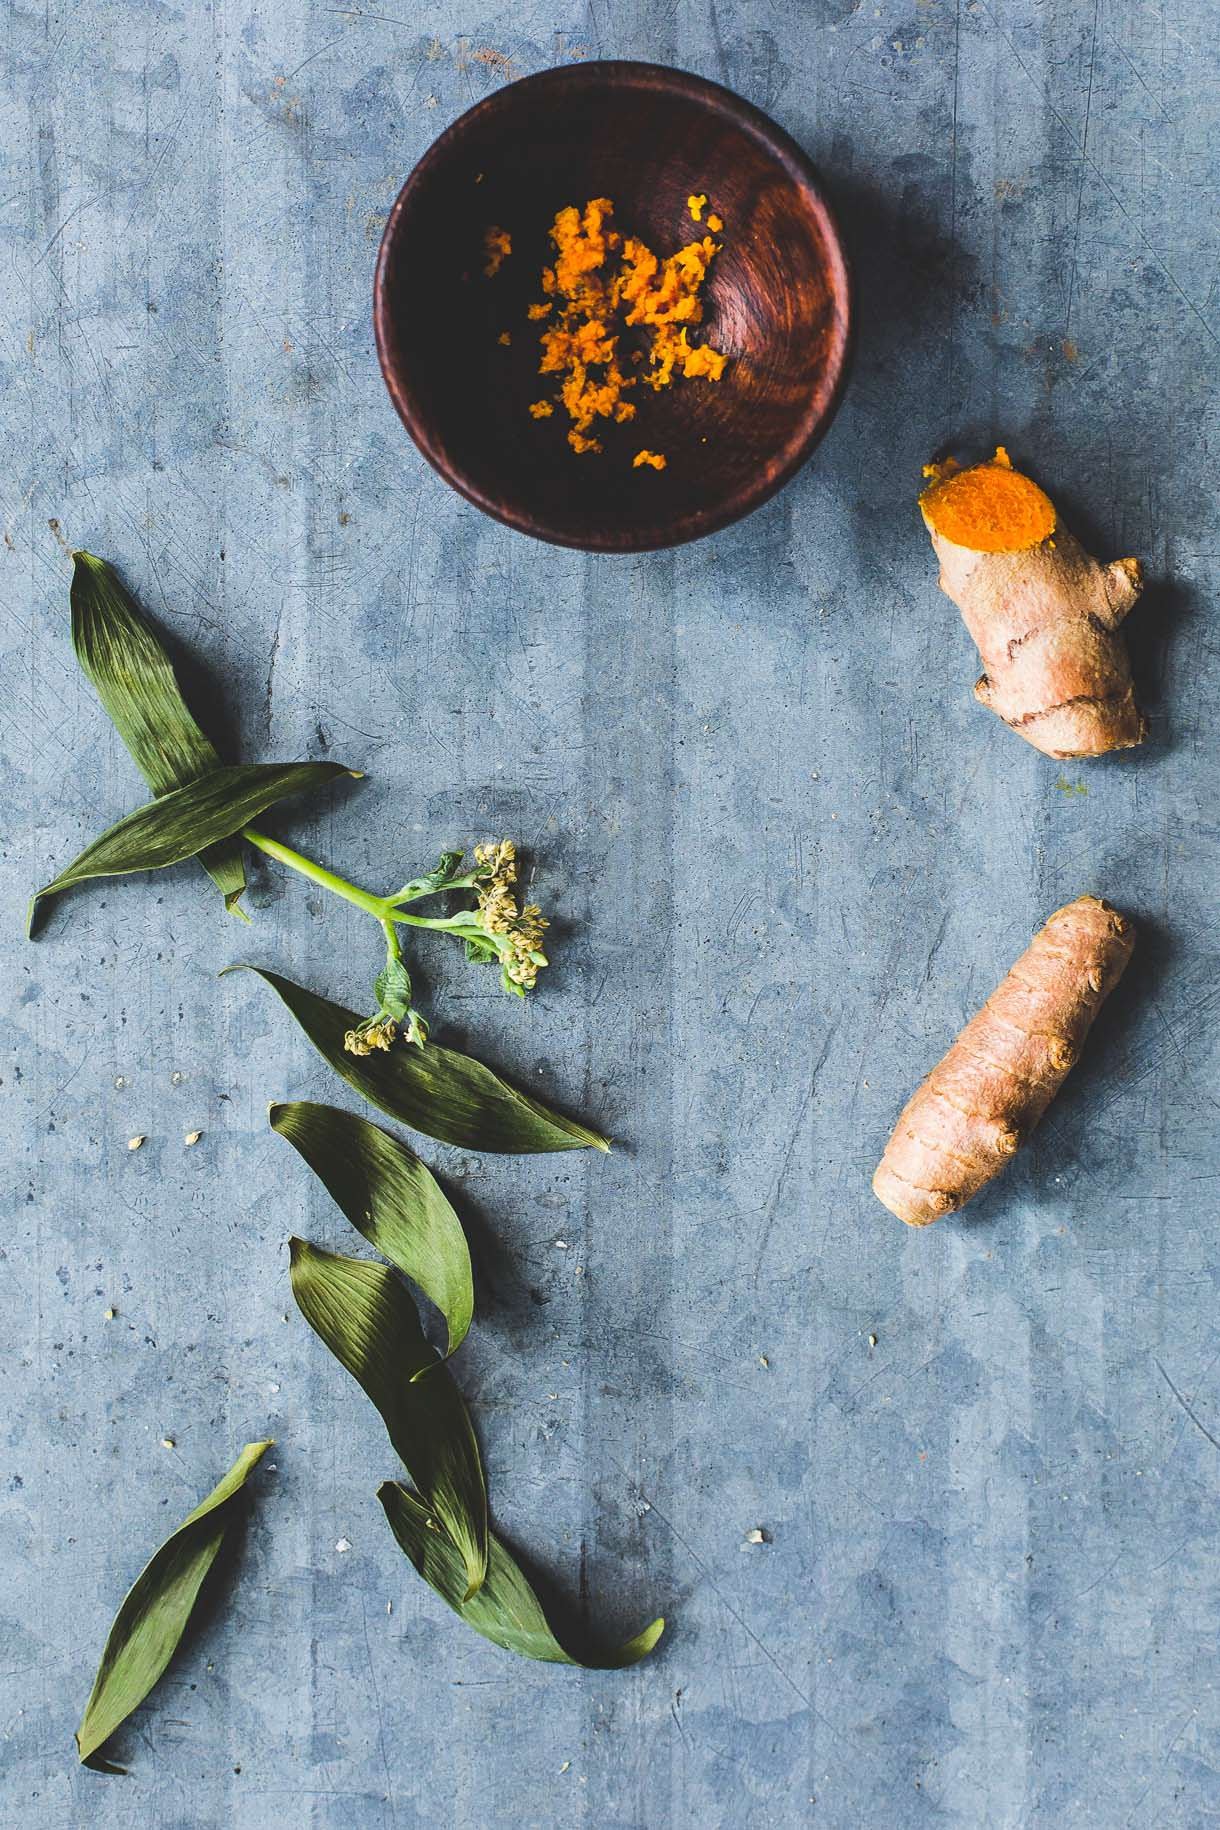 Turmeric 101: learn what it is, why it's good for you, and how to incorporate it into your diet